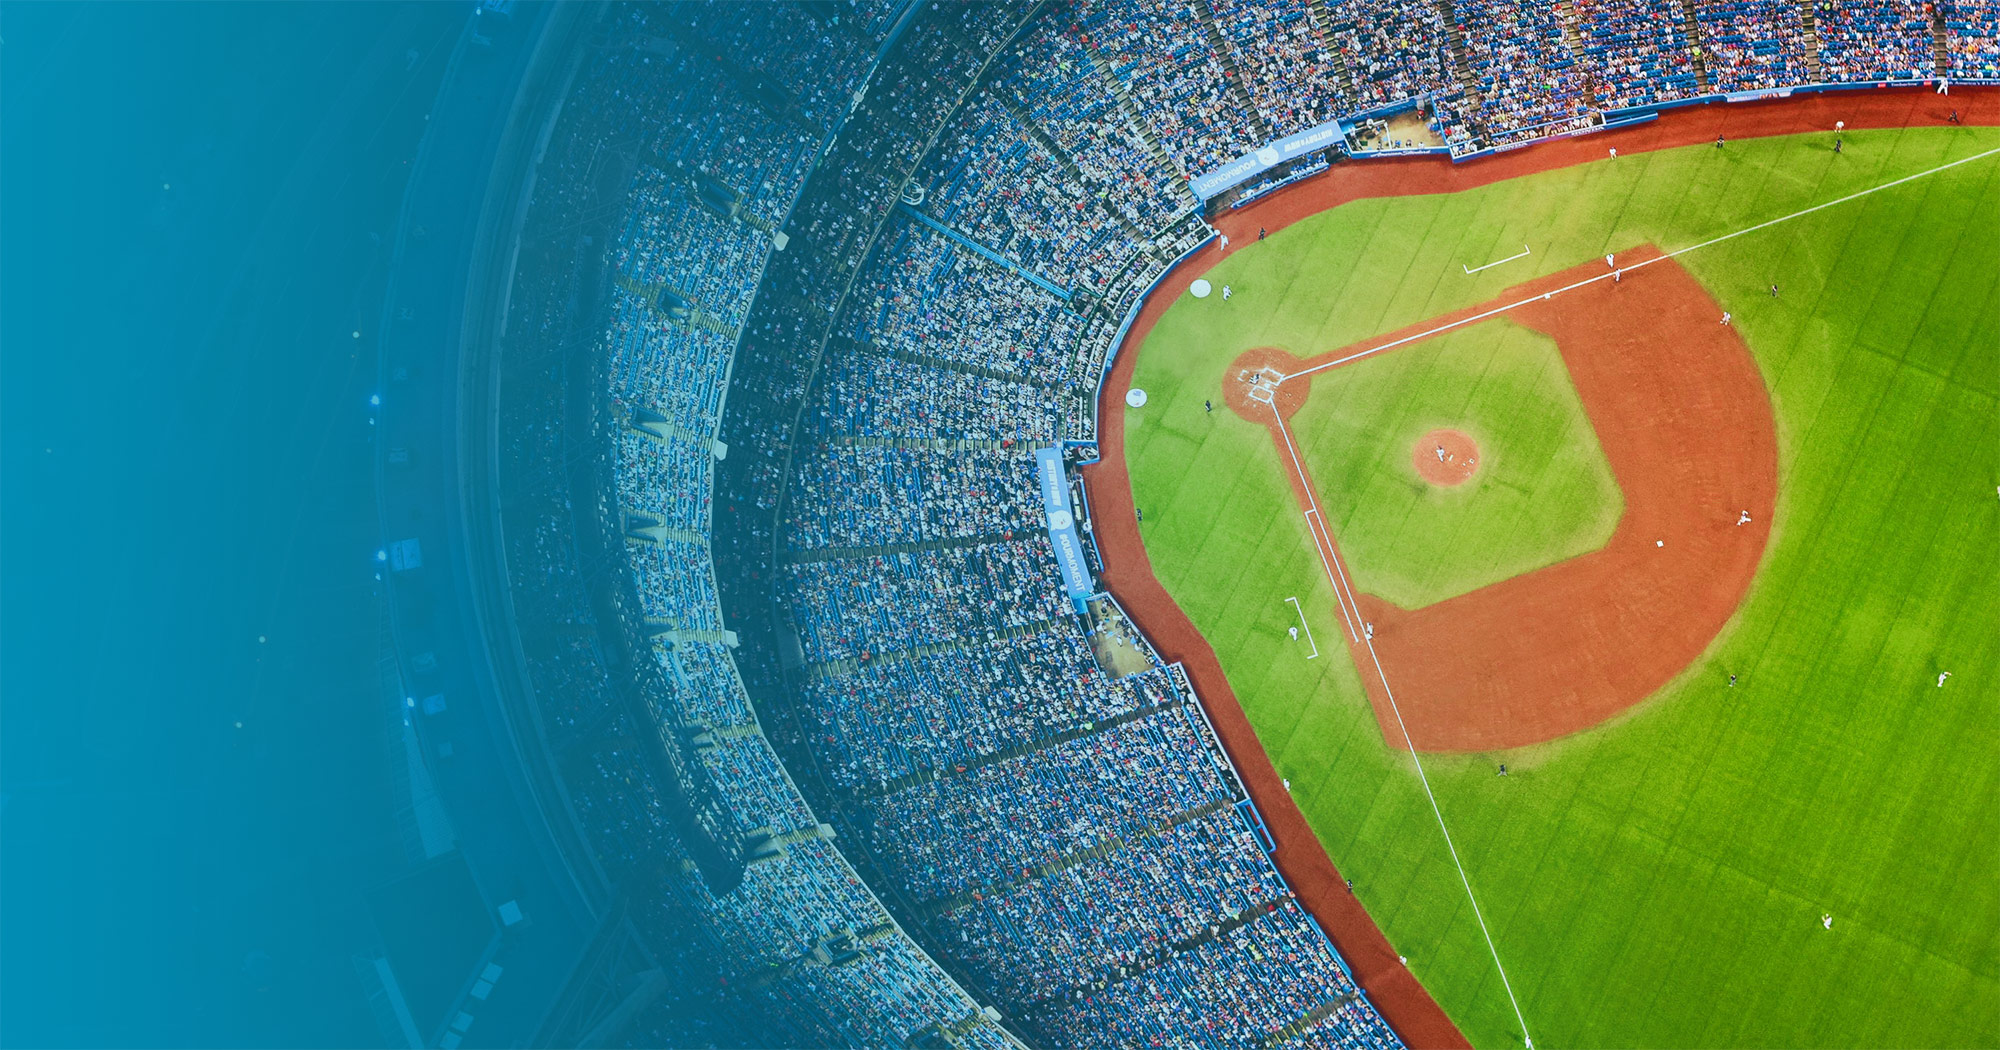 Aerial view of a crowded baseball stadium during a baseball game